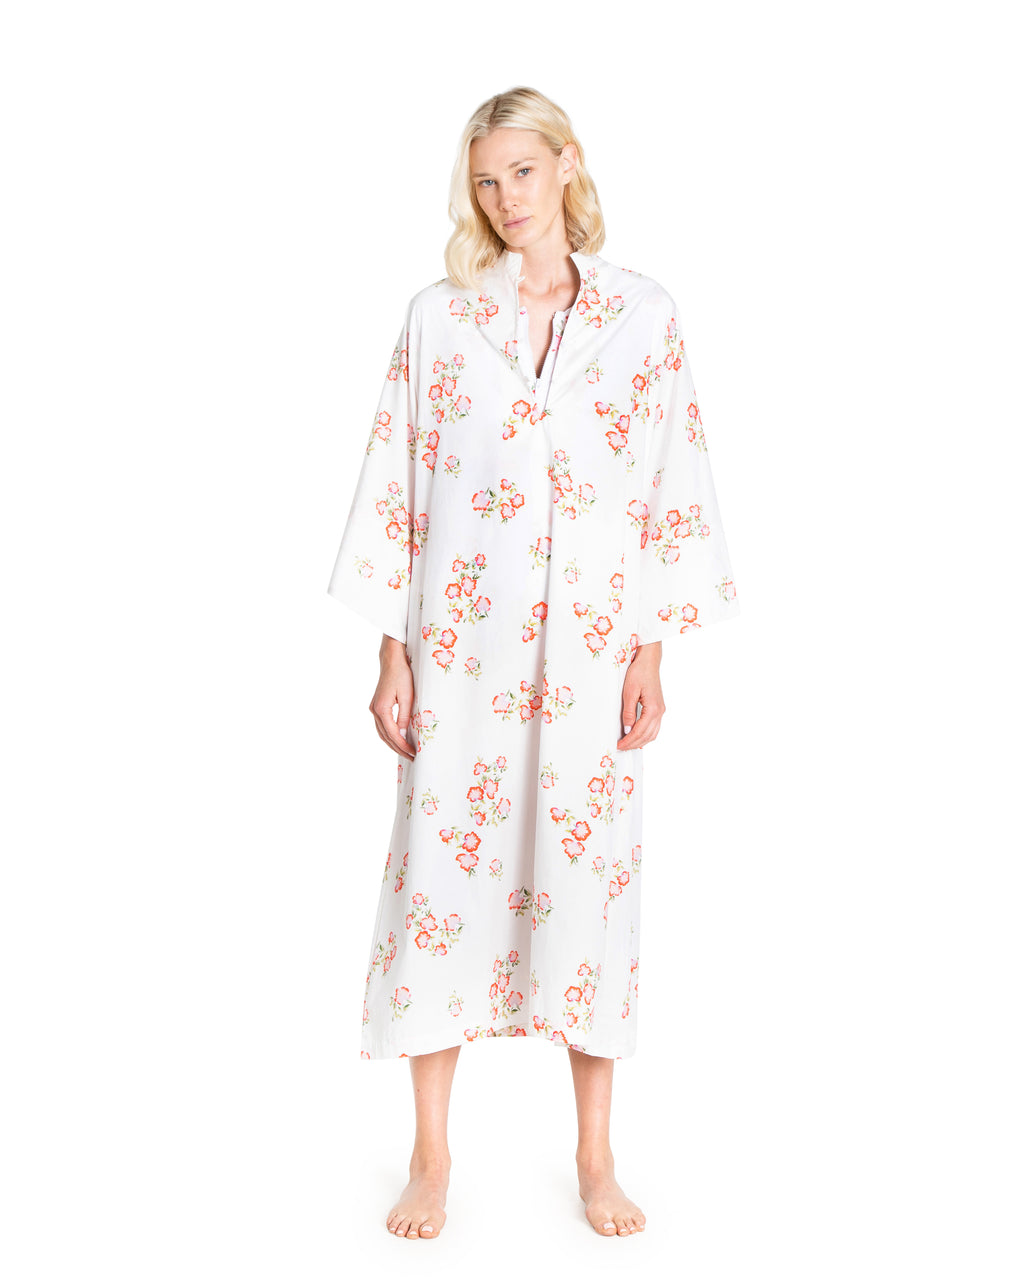 no. 498 white & pink floral maxi caftan